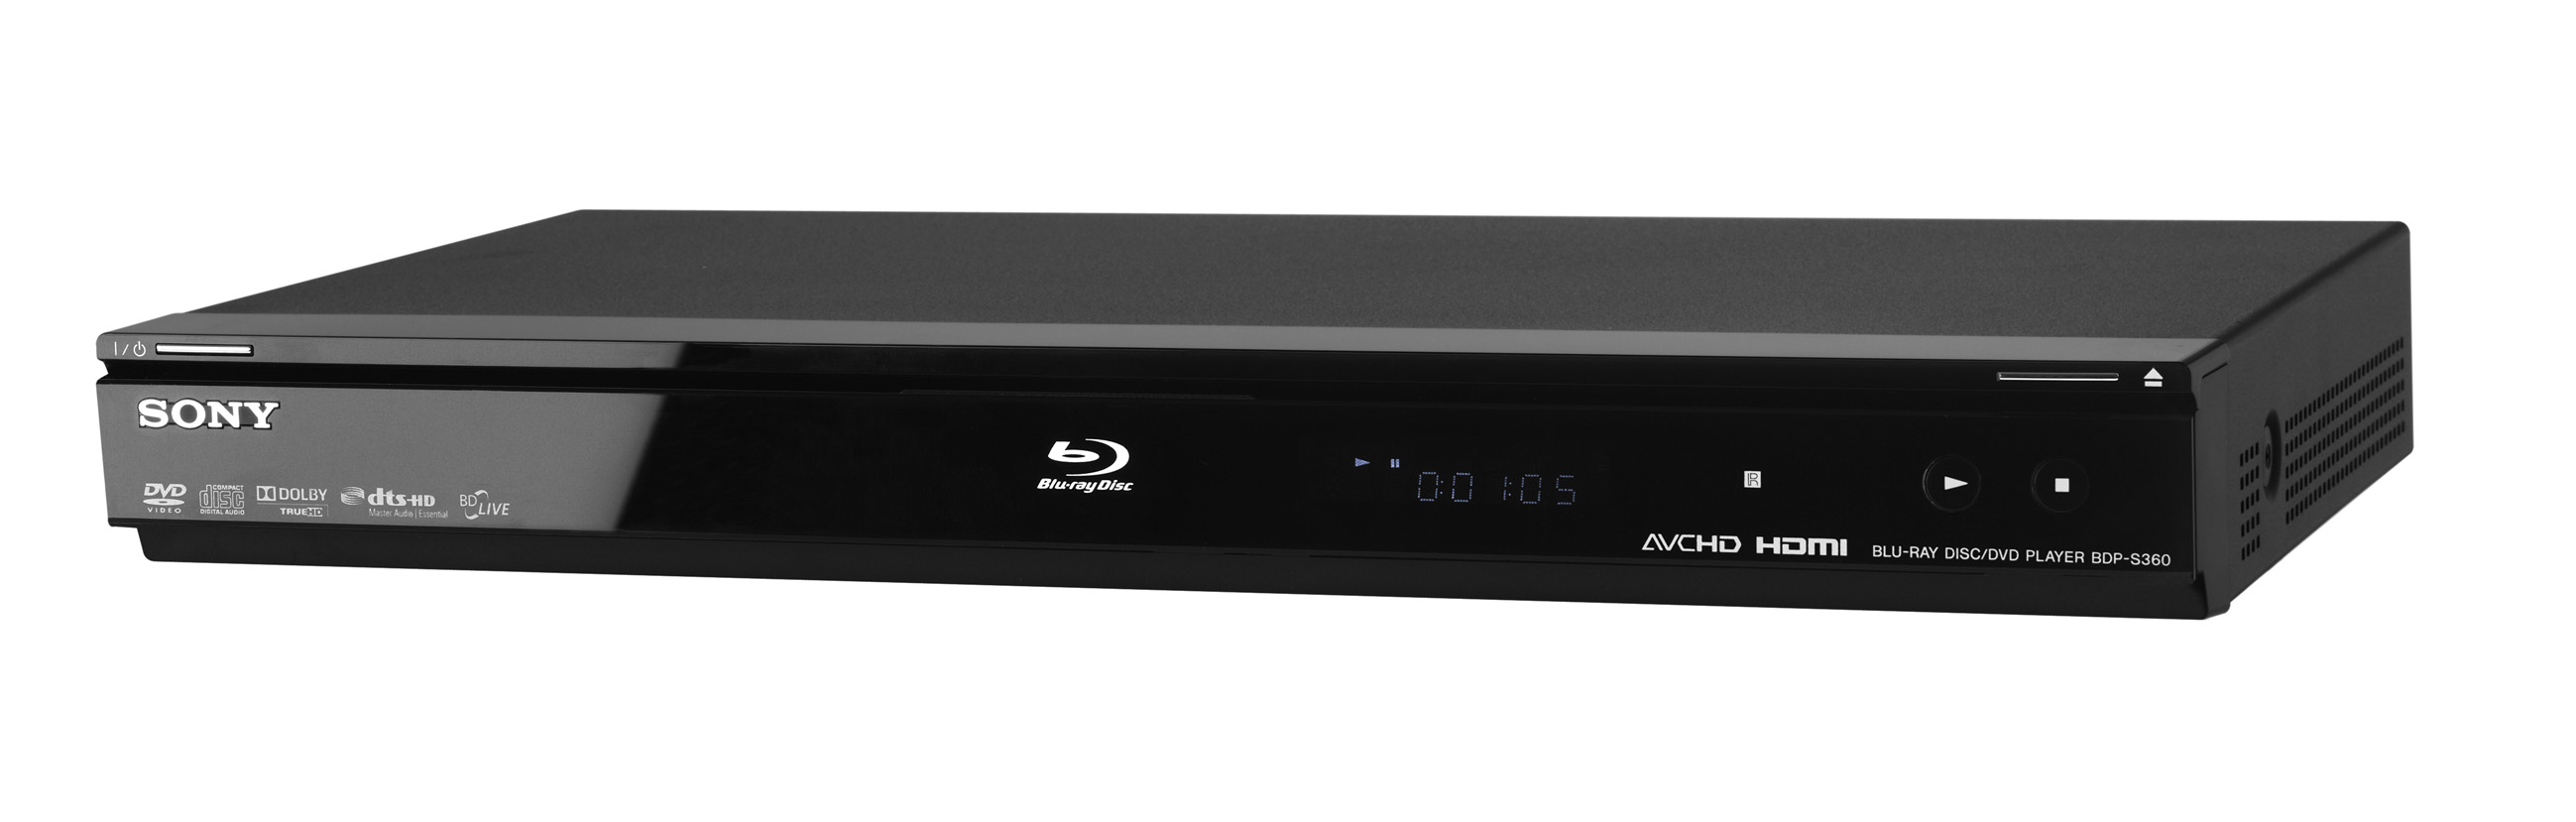 sony unveils new blu ray player bdp s360. Black Bedroom Furniture Sets. Home Design Ideas